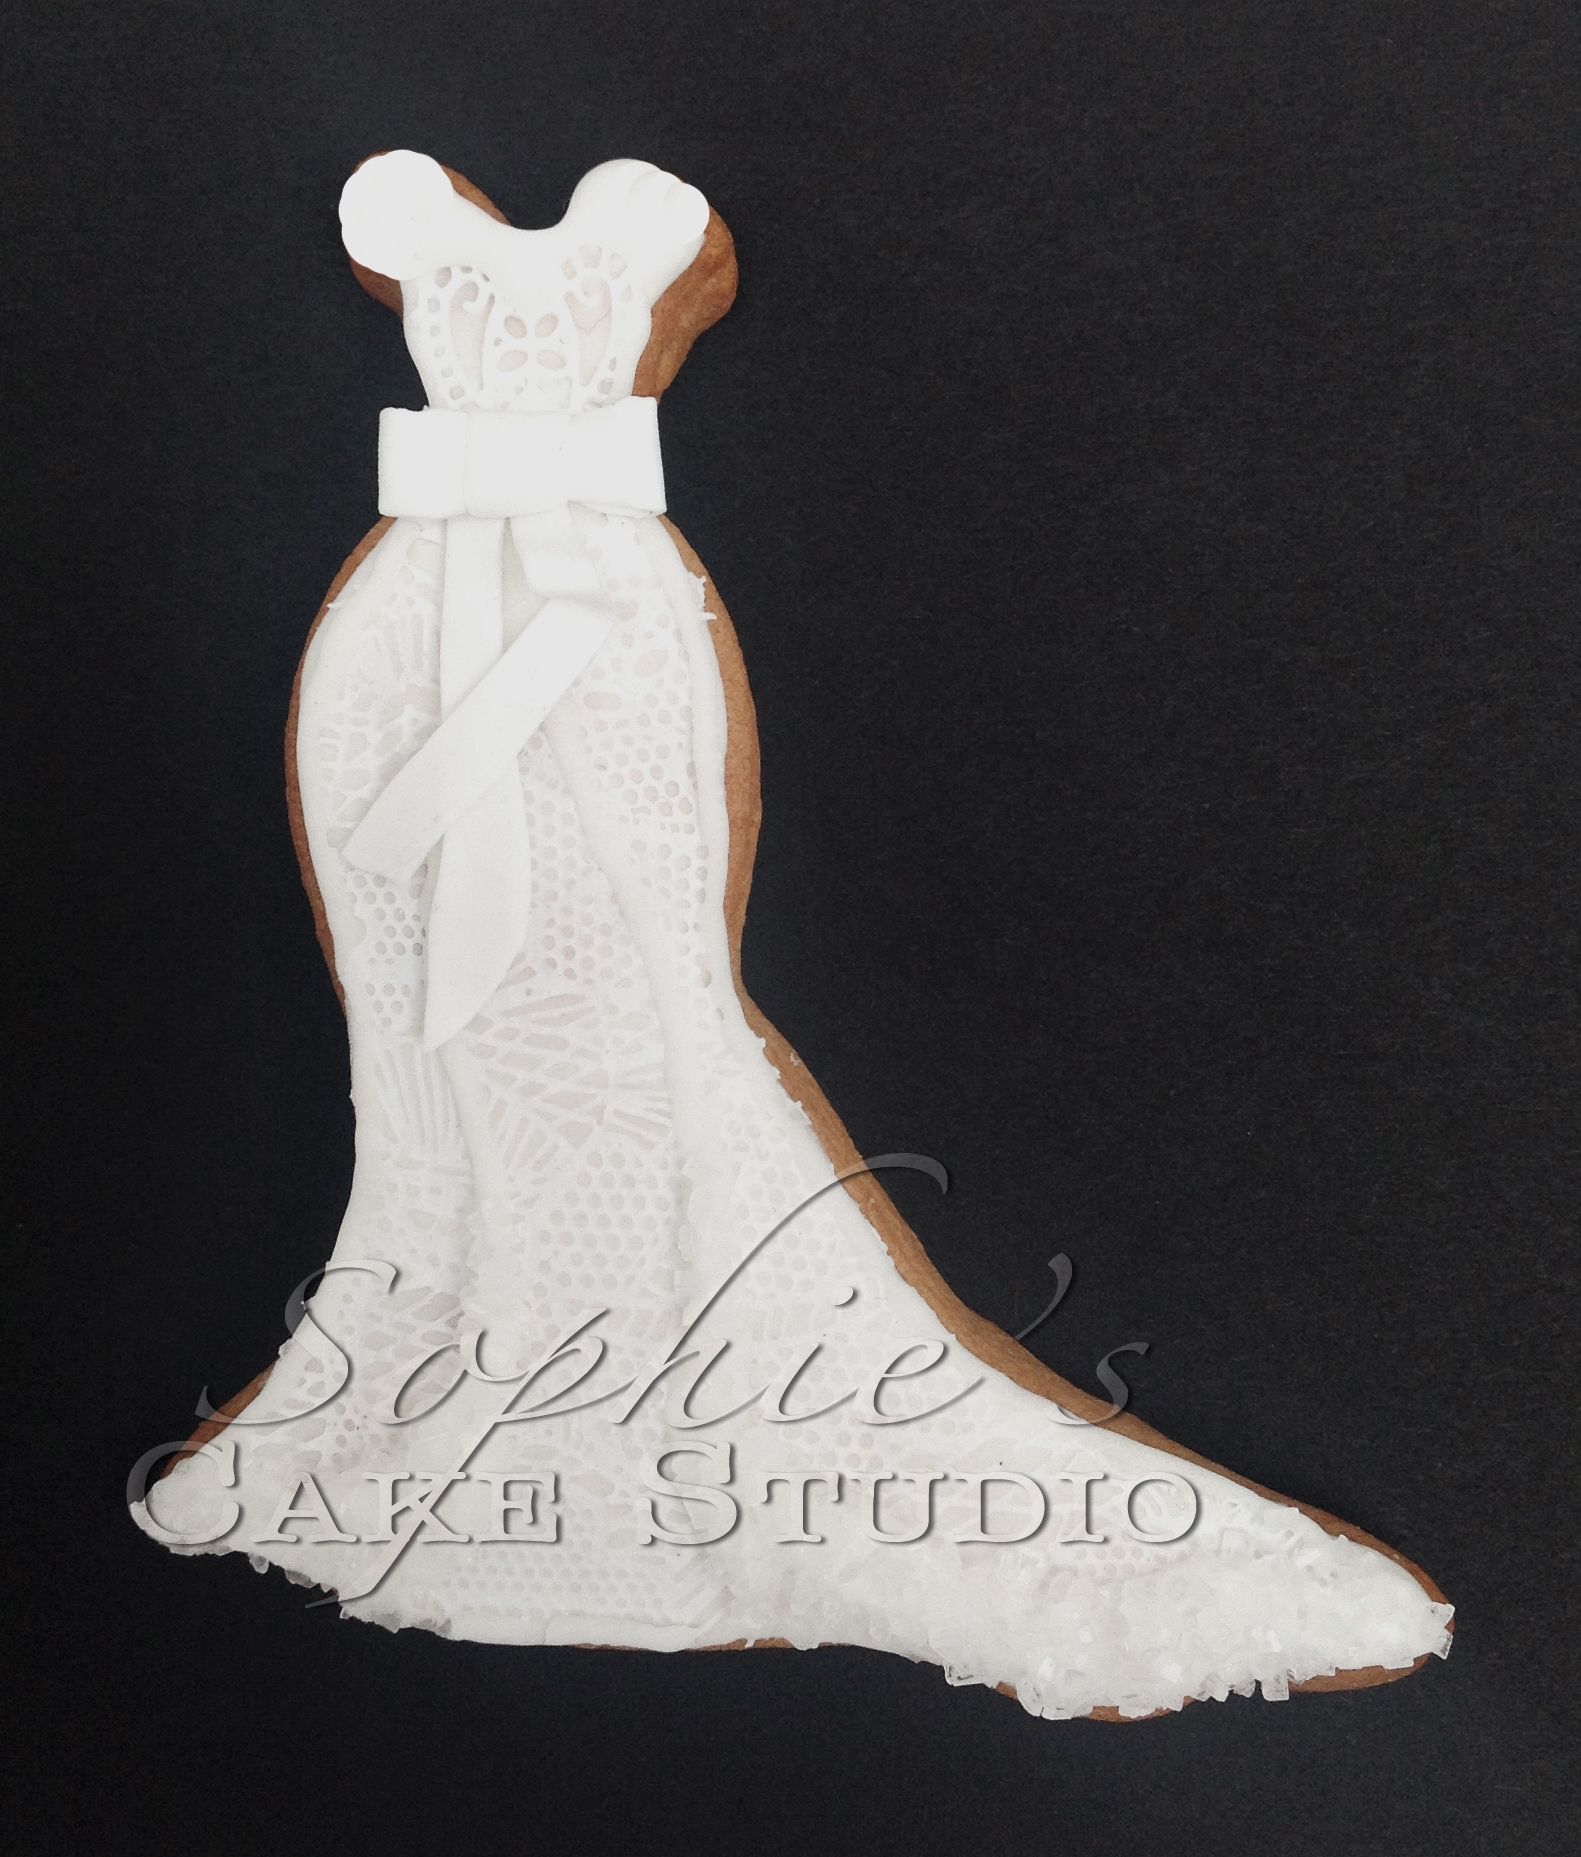 cookie weddingdress2 watermark.jpg